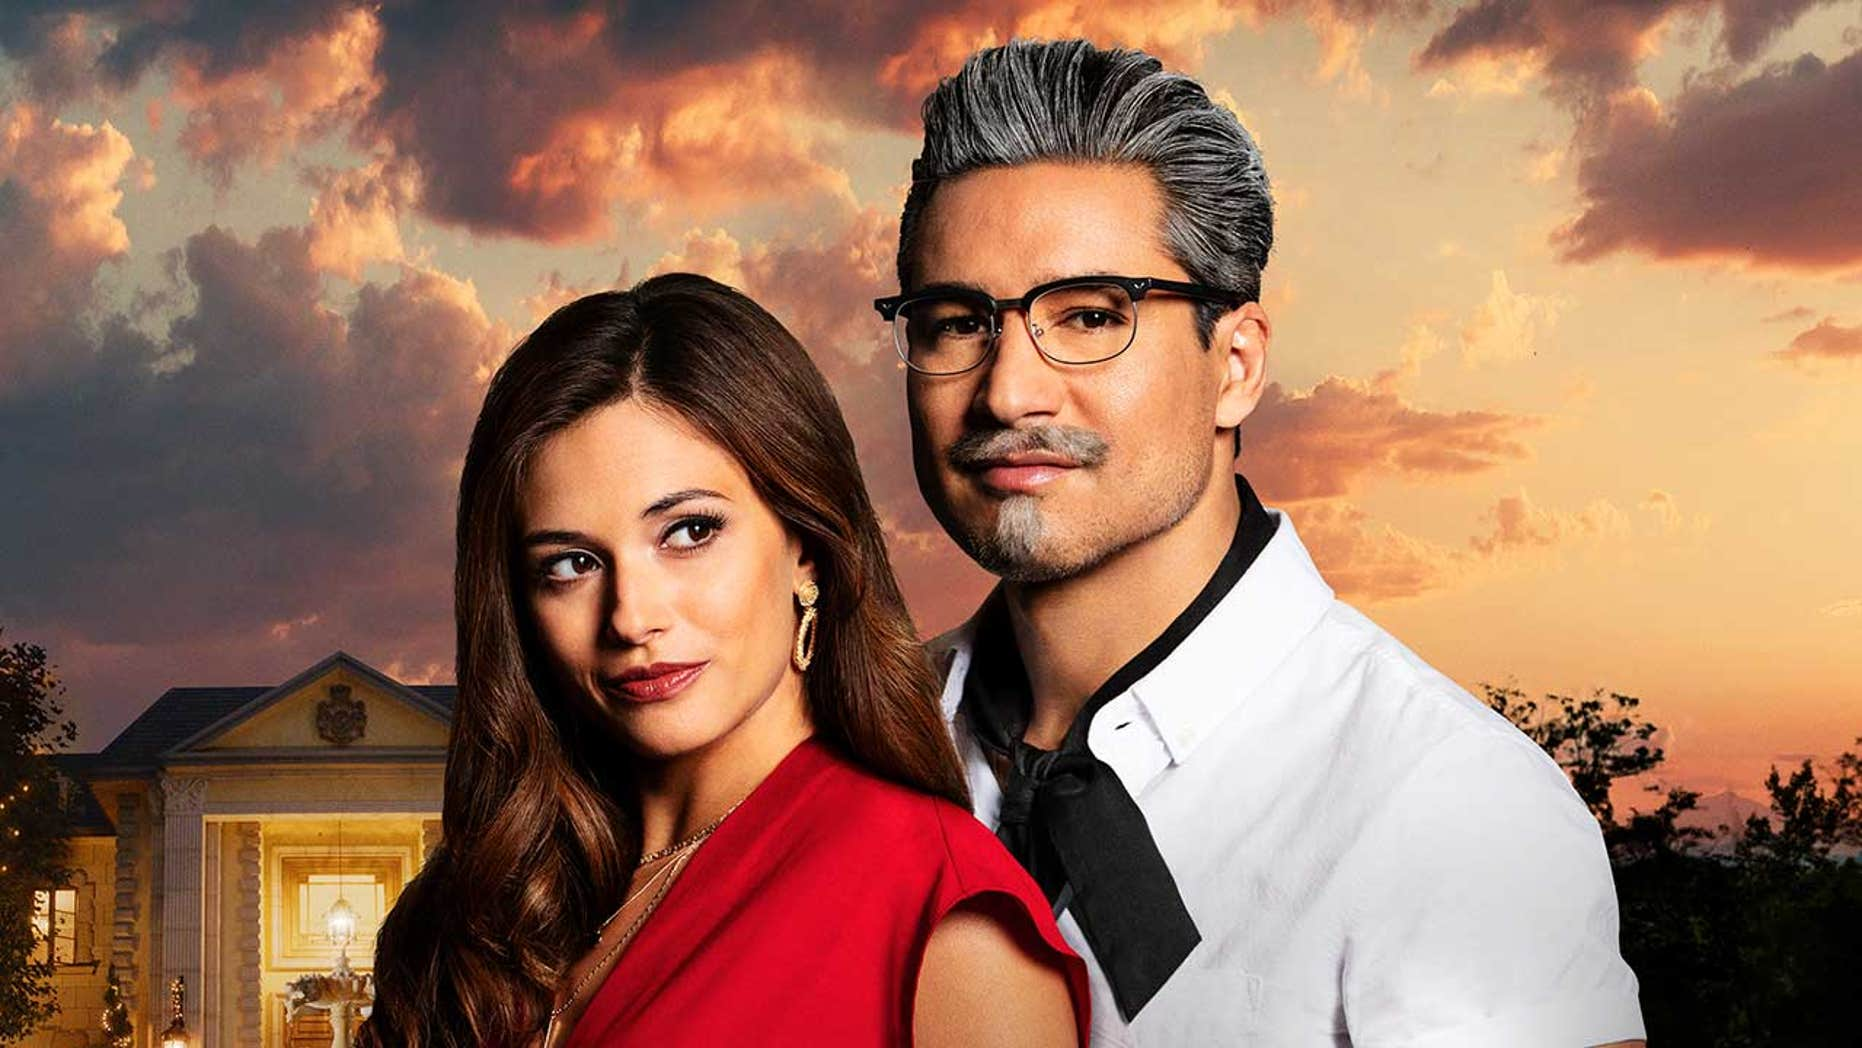 KFC teams with Lifetime for 'steamy' holiday mini-movie starring Mario Lopez as Colonel Sanders